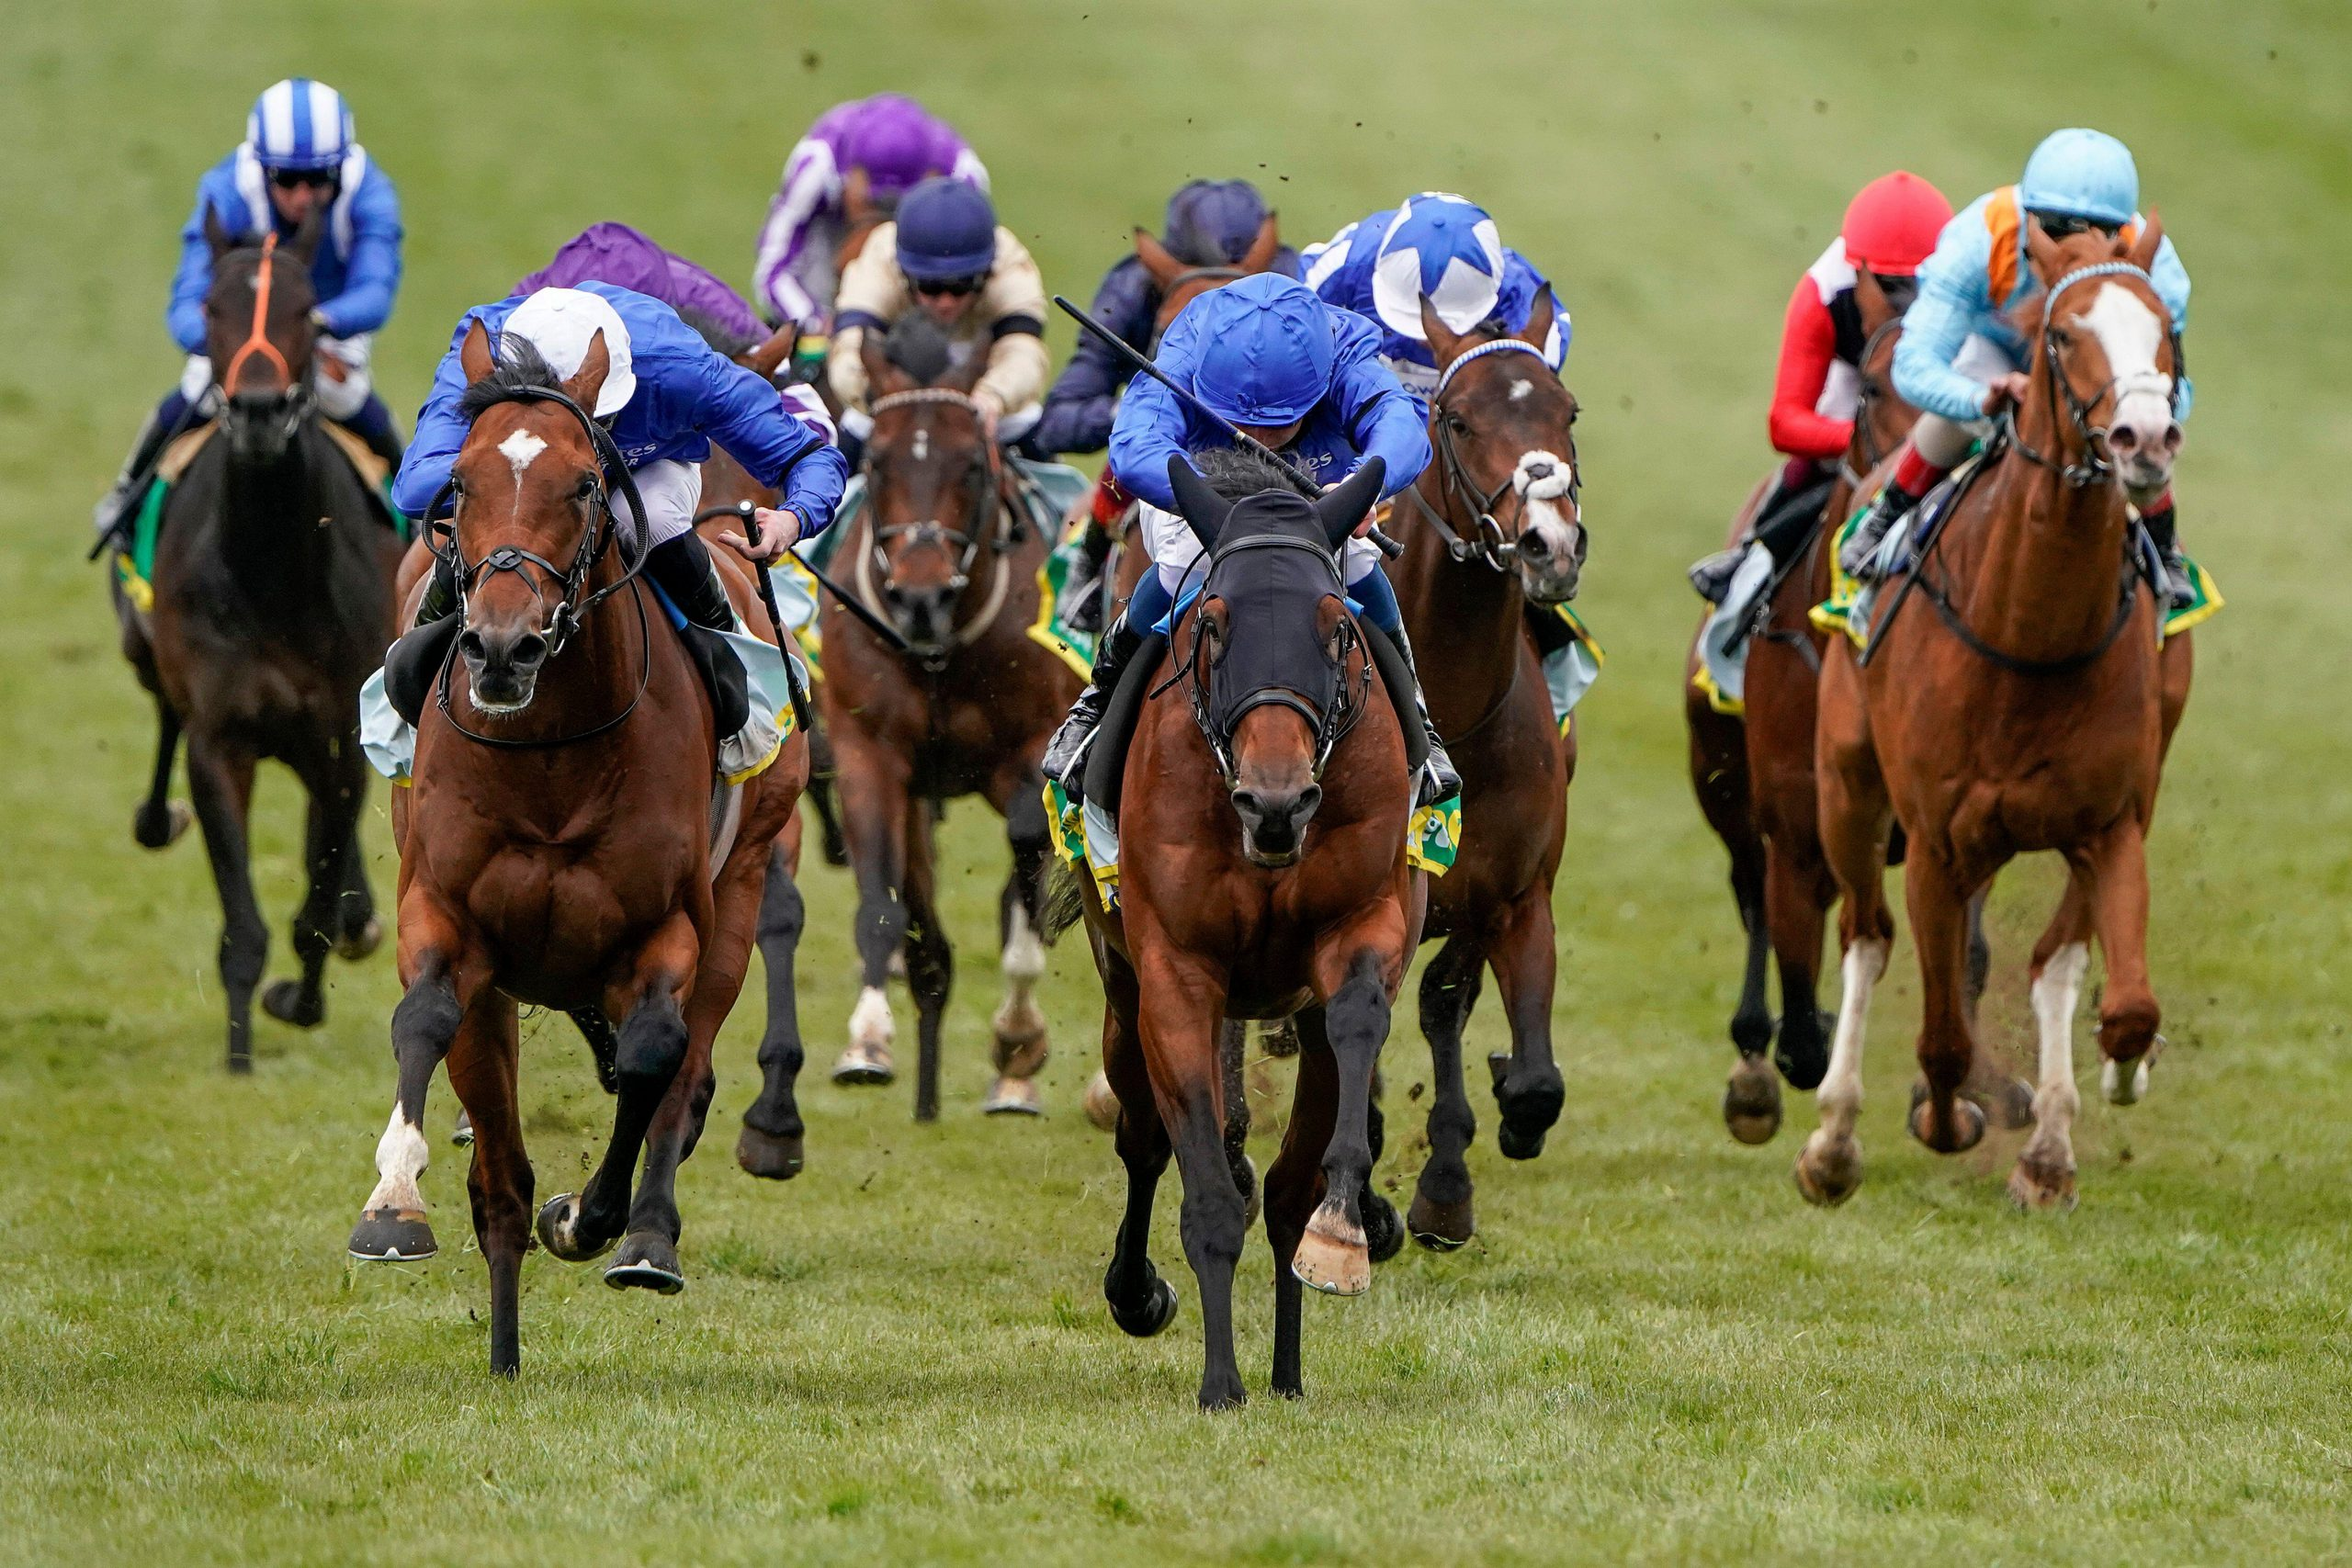 Master Of The Seas ridden by William Buick riding (centre) win The bet365 Craven Stakes at Newmarket Racecourse. Picture date: Thursday April 15, 2021.